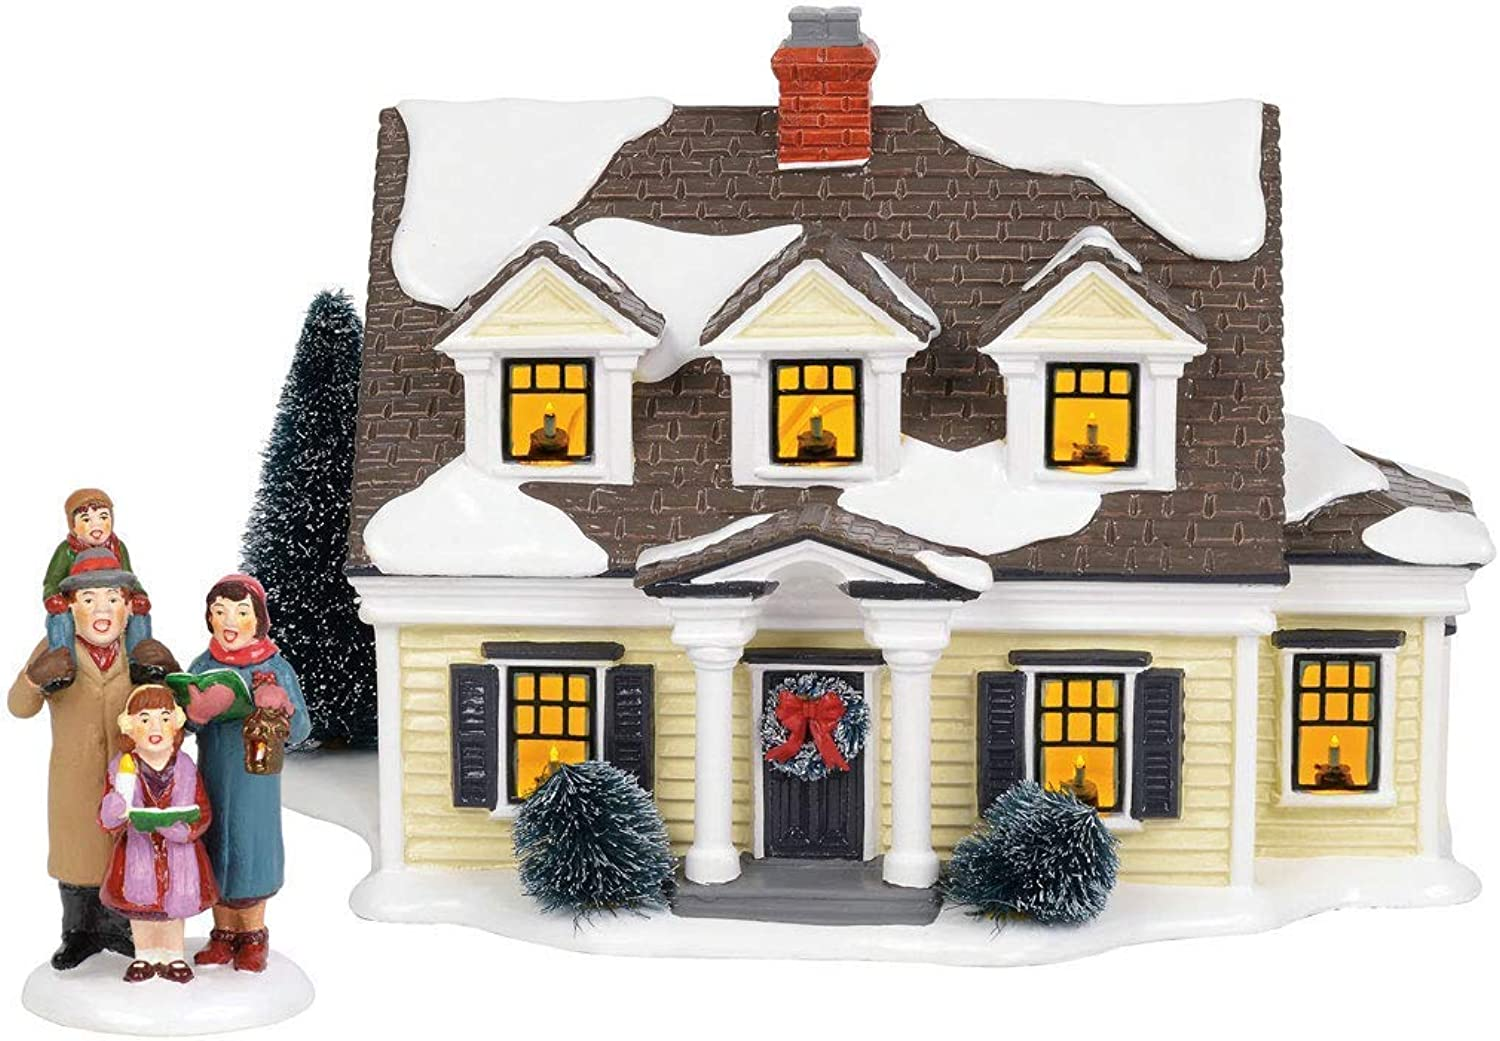 Department56 Original Snow Village Welcoming Christmas Lit Building and Accessory, 7.09 , Multicolor